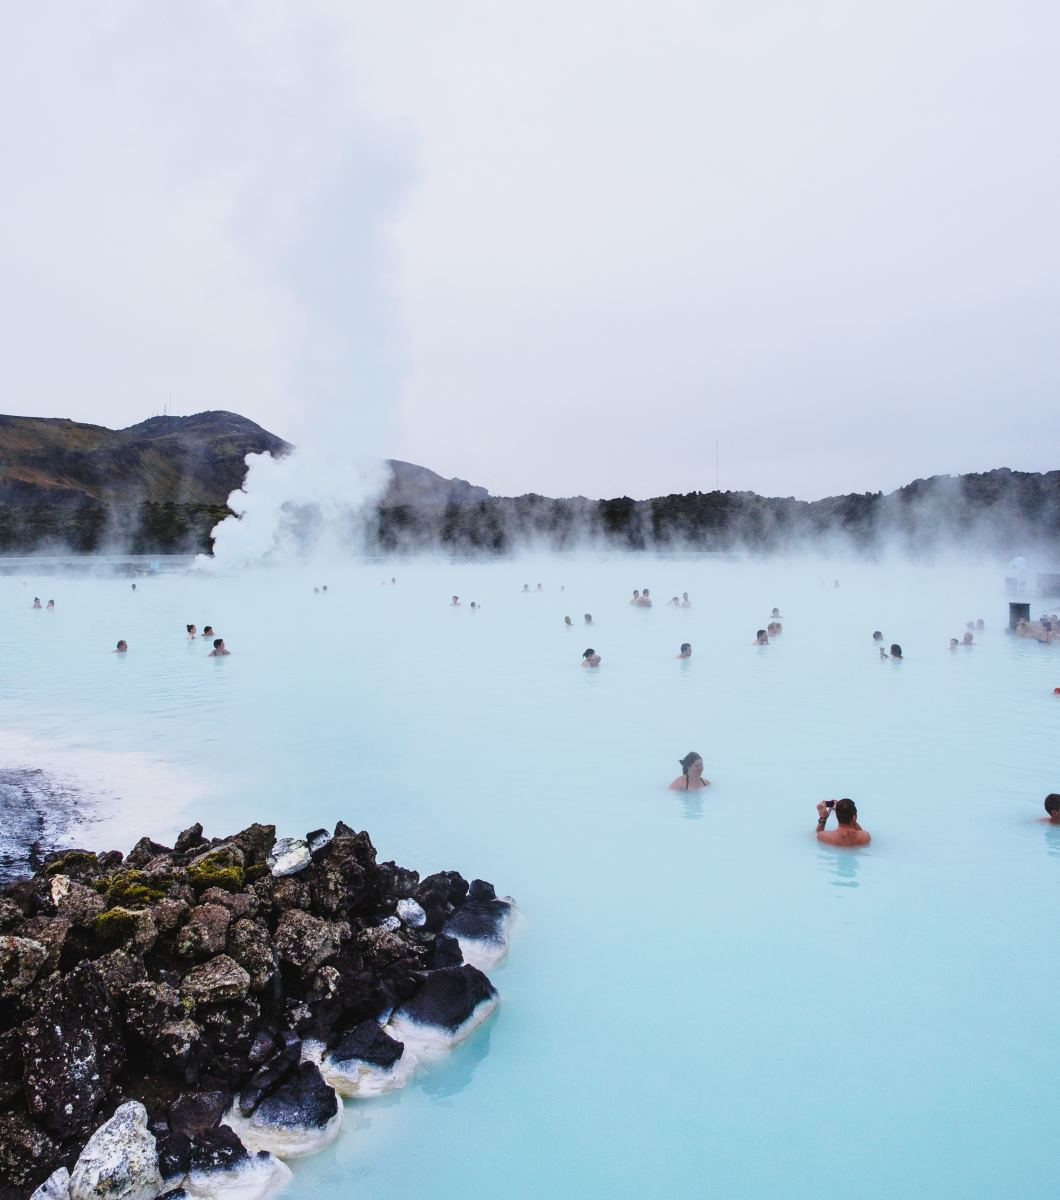 Before you can enjoy a swim in Iceland, you must follow some strict rules.